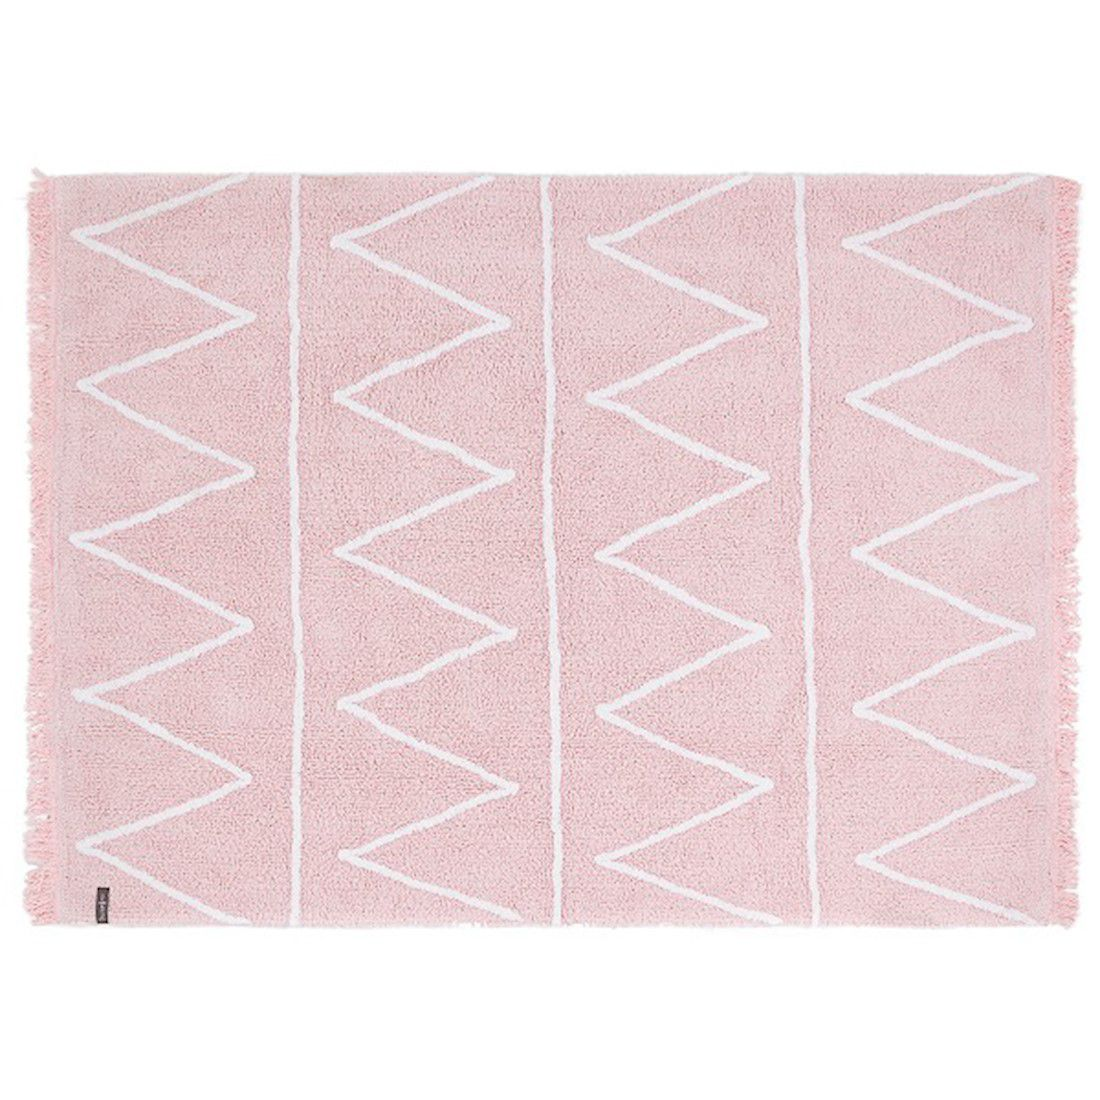 Tapete Lorena Canals Hippy Rosa Soft 120 x 160 cm